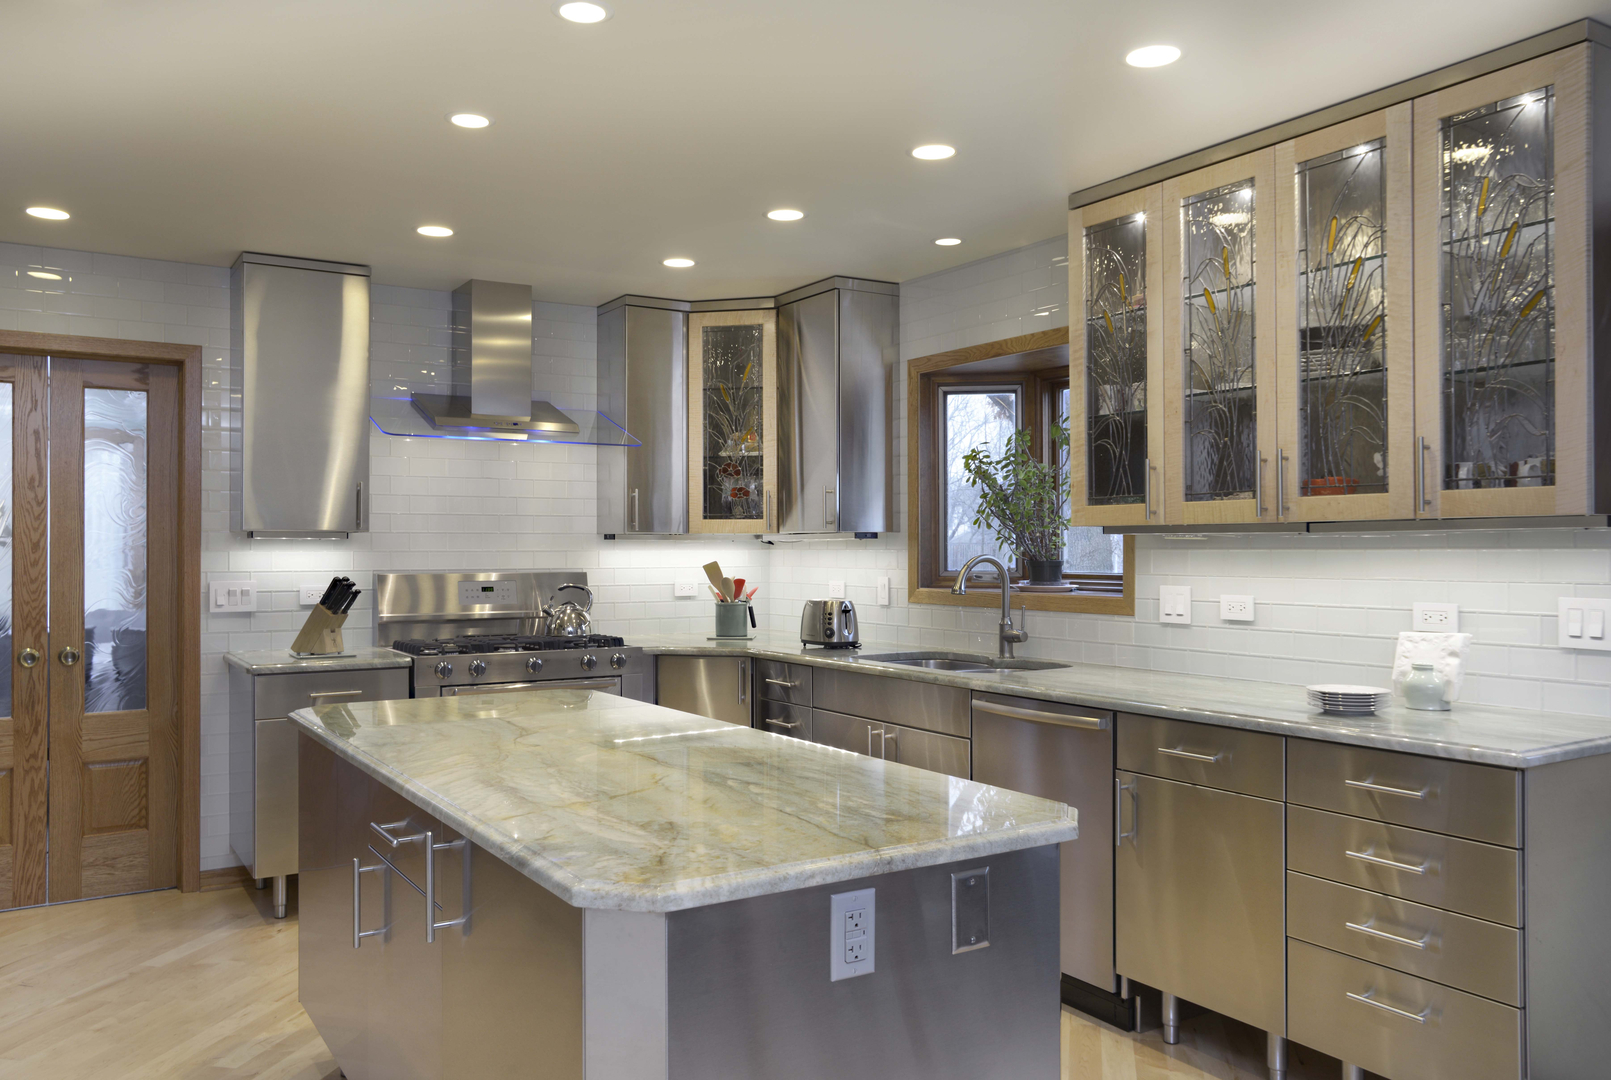 stainless steel kitchen cabinets price – aiheaven.co